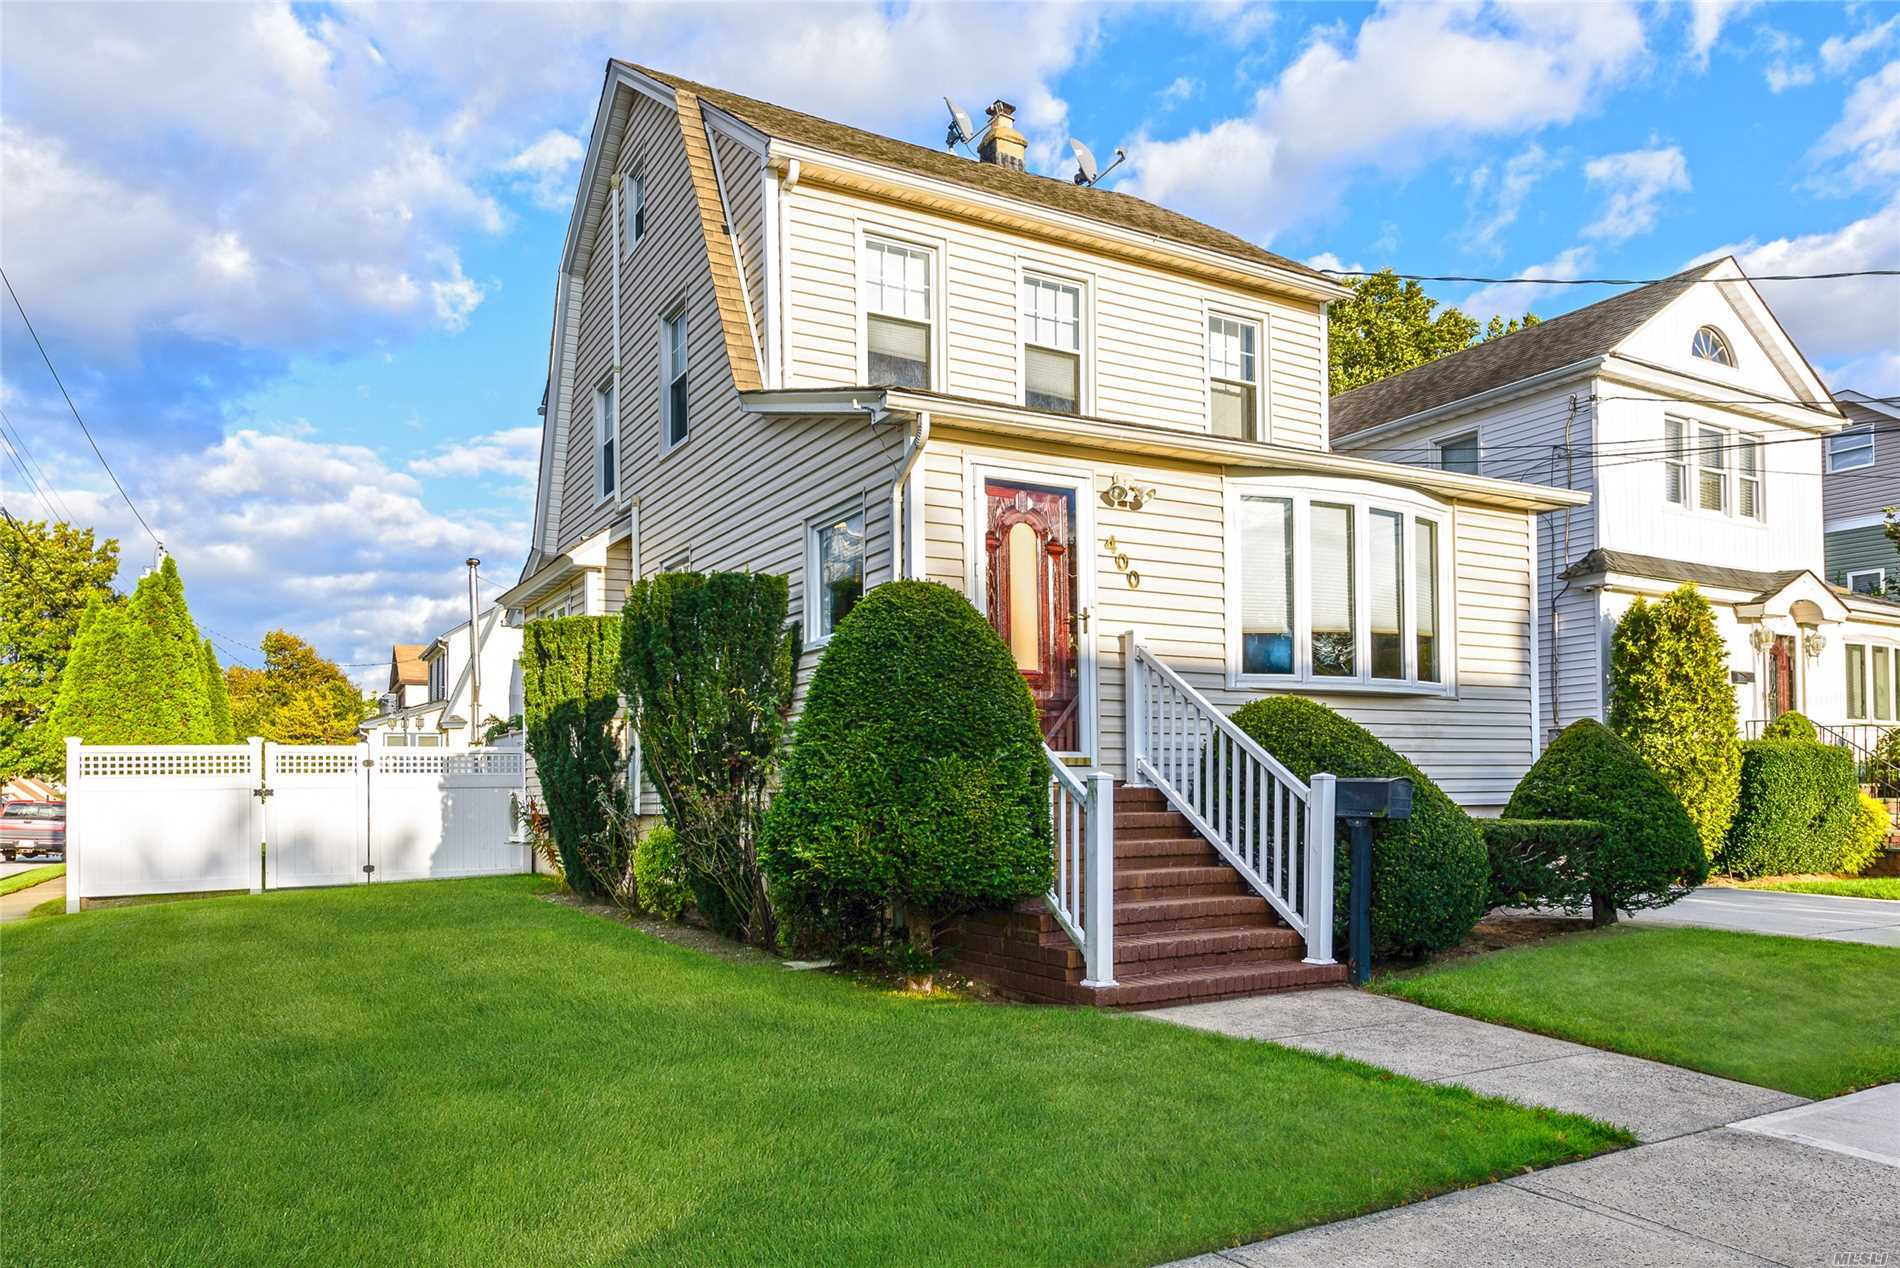 Prime Location! Four Bedroom Colonial On Over Sized Property With Open Concept And Huge Backyard In Highly Desirable Sd#14 With Super Low Taxes. Wood Flooring Throughout And Plenty Of Closet Space. Updated Kitchen And Bathroom With Jacuzzi Tub. Over Sized Backyard With New Decking And Retractable Awning. Four Zone Heating System. Tons Of Upgrades Throughout. Move Right In!